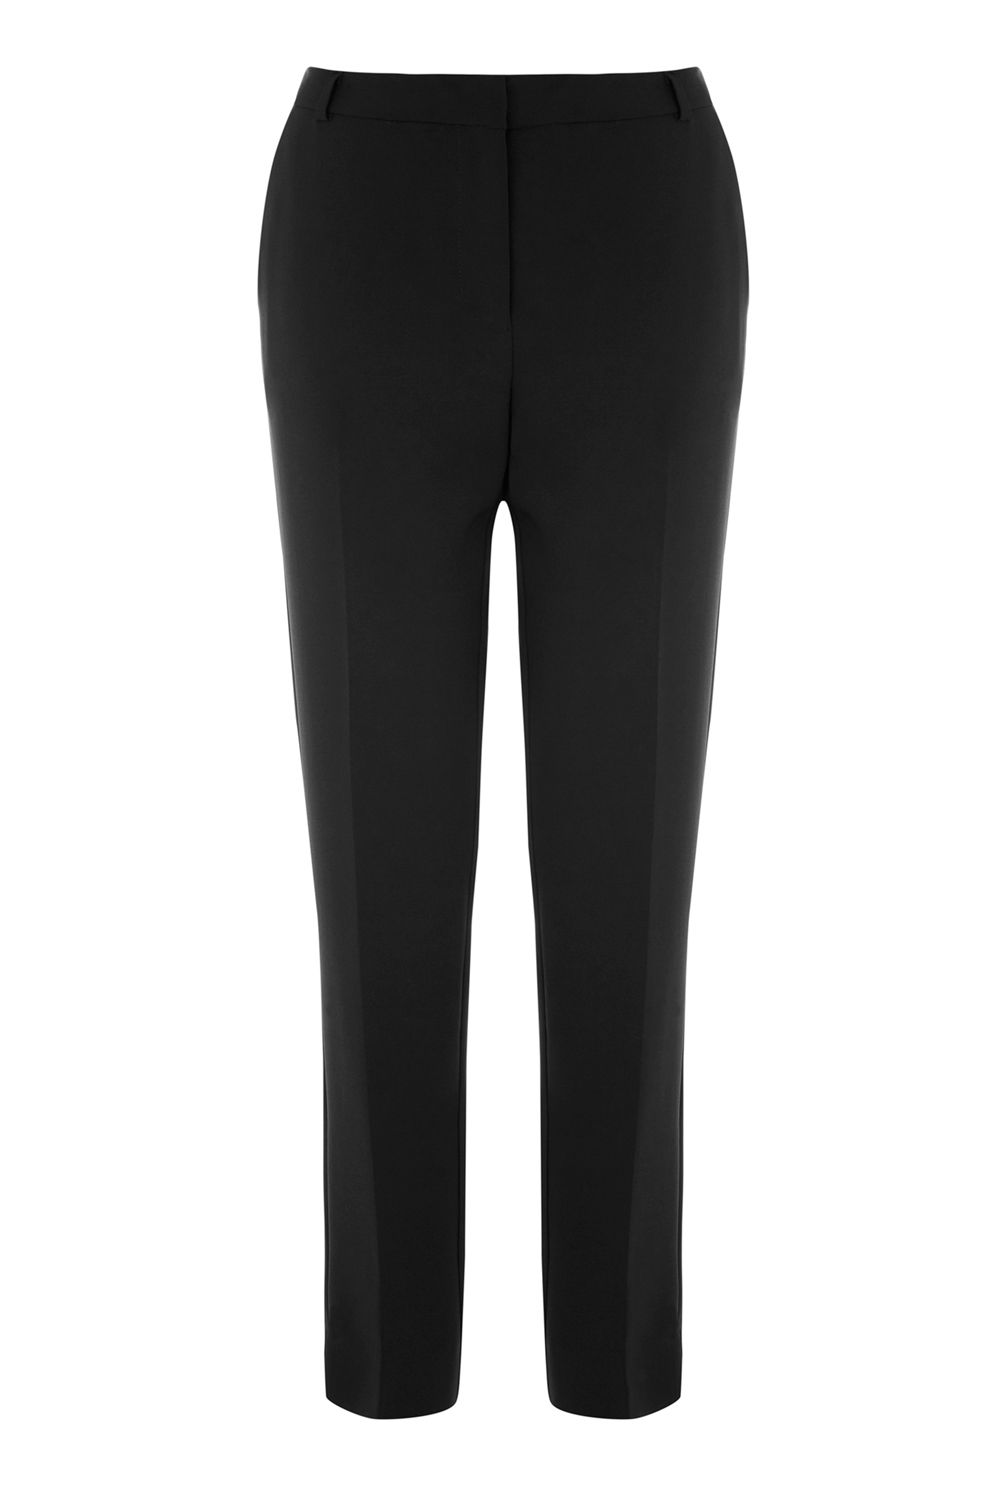 Warehouse Slim Leg Trouser, Black